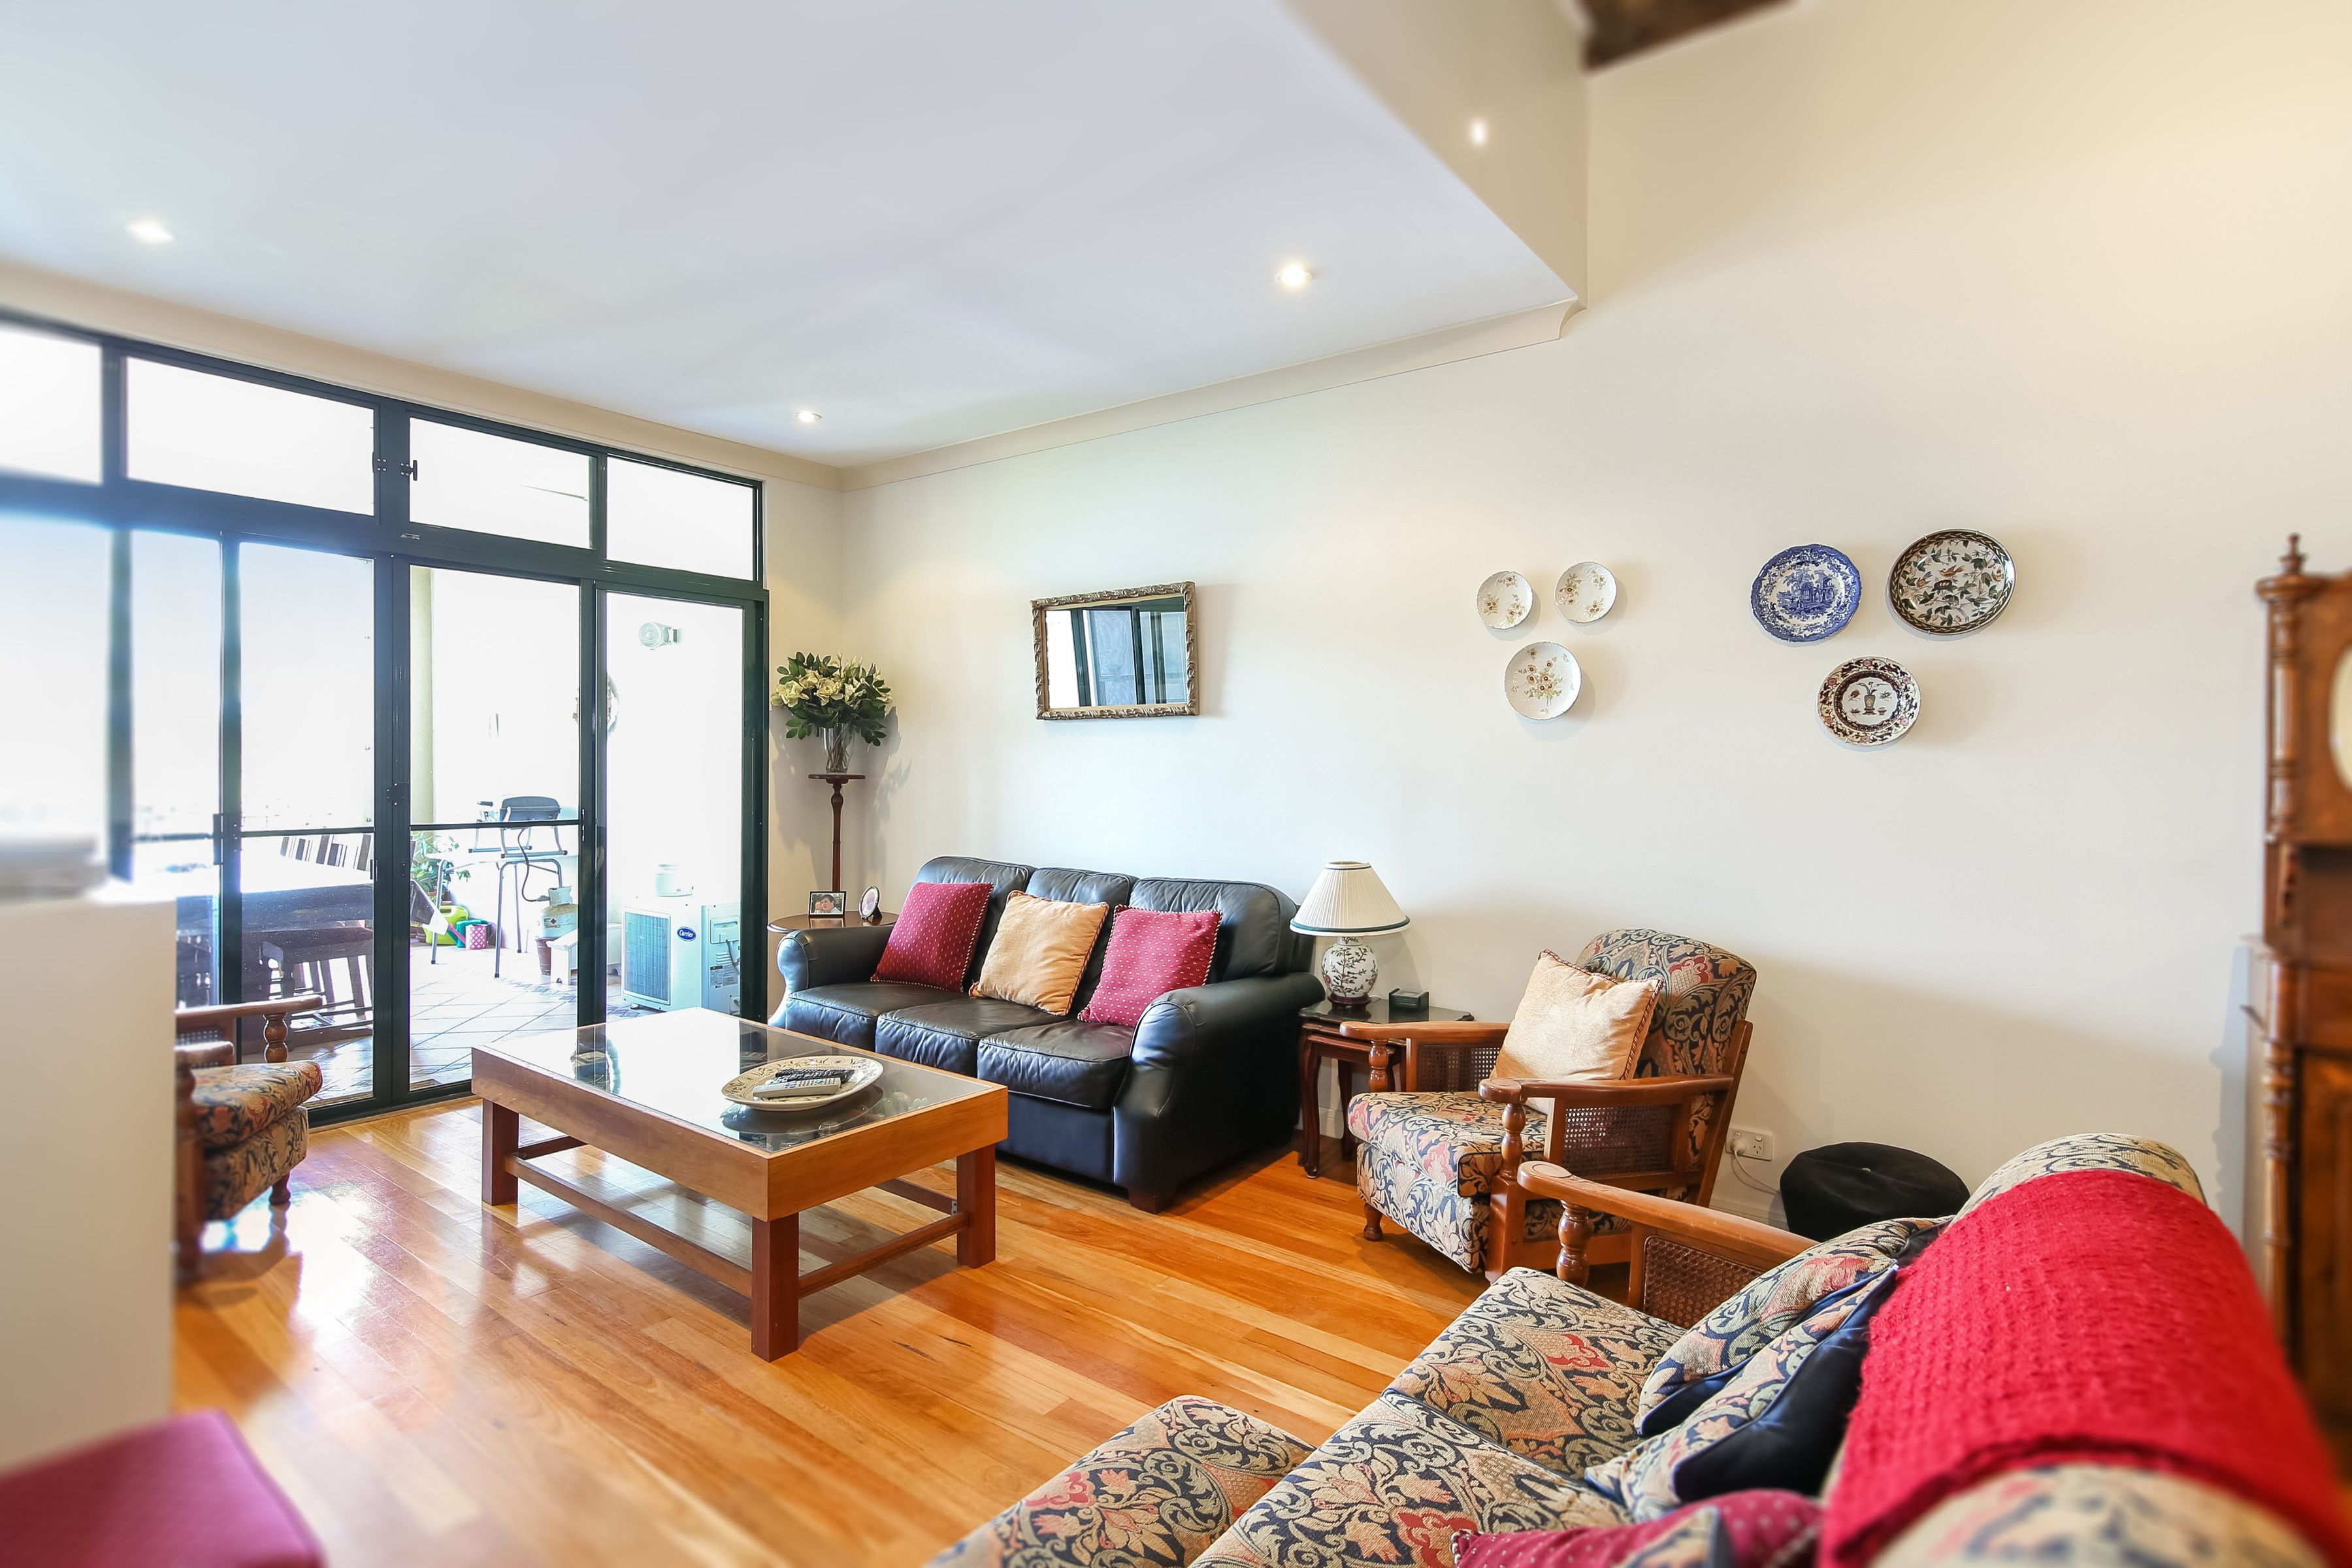 19/215 Darby Street, Cooks Hill